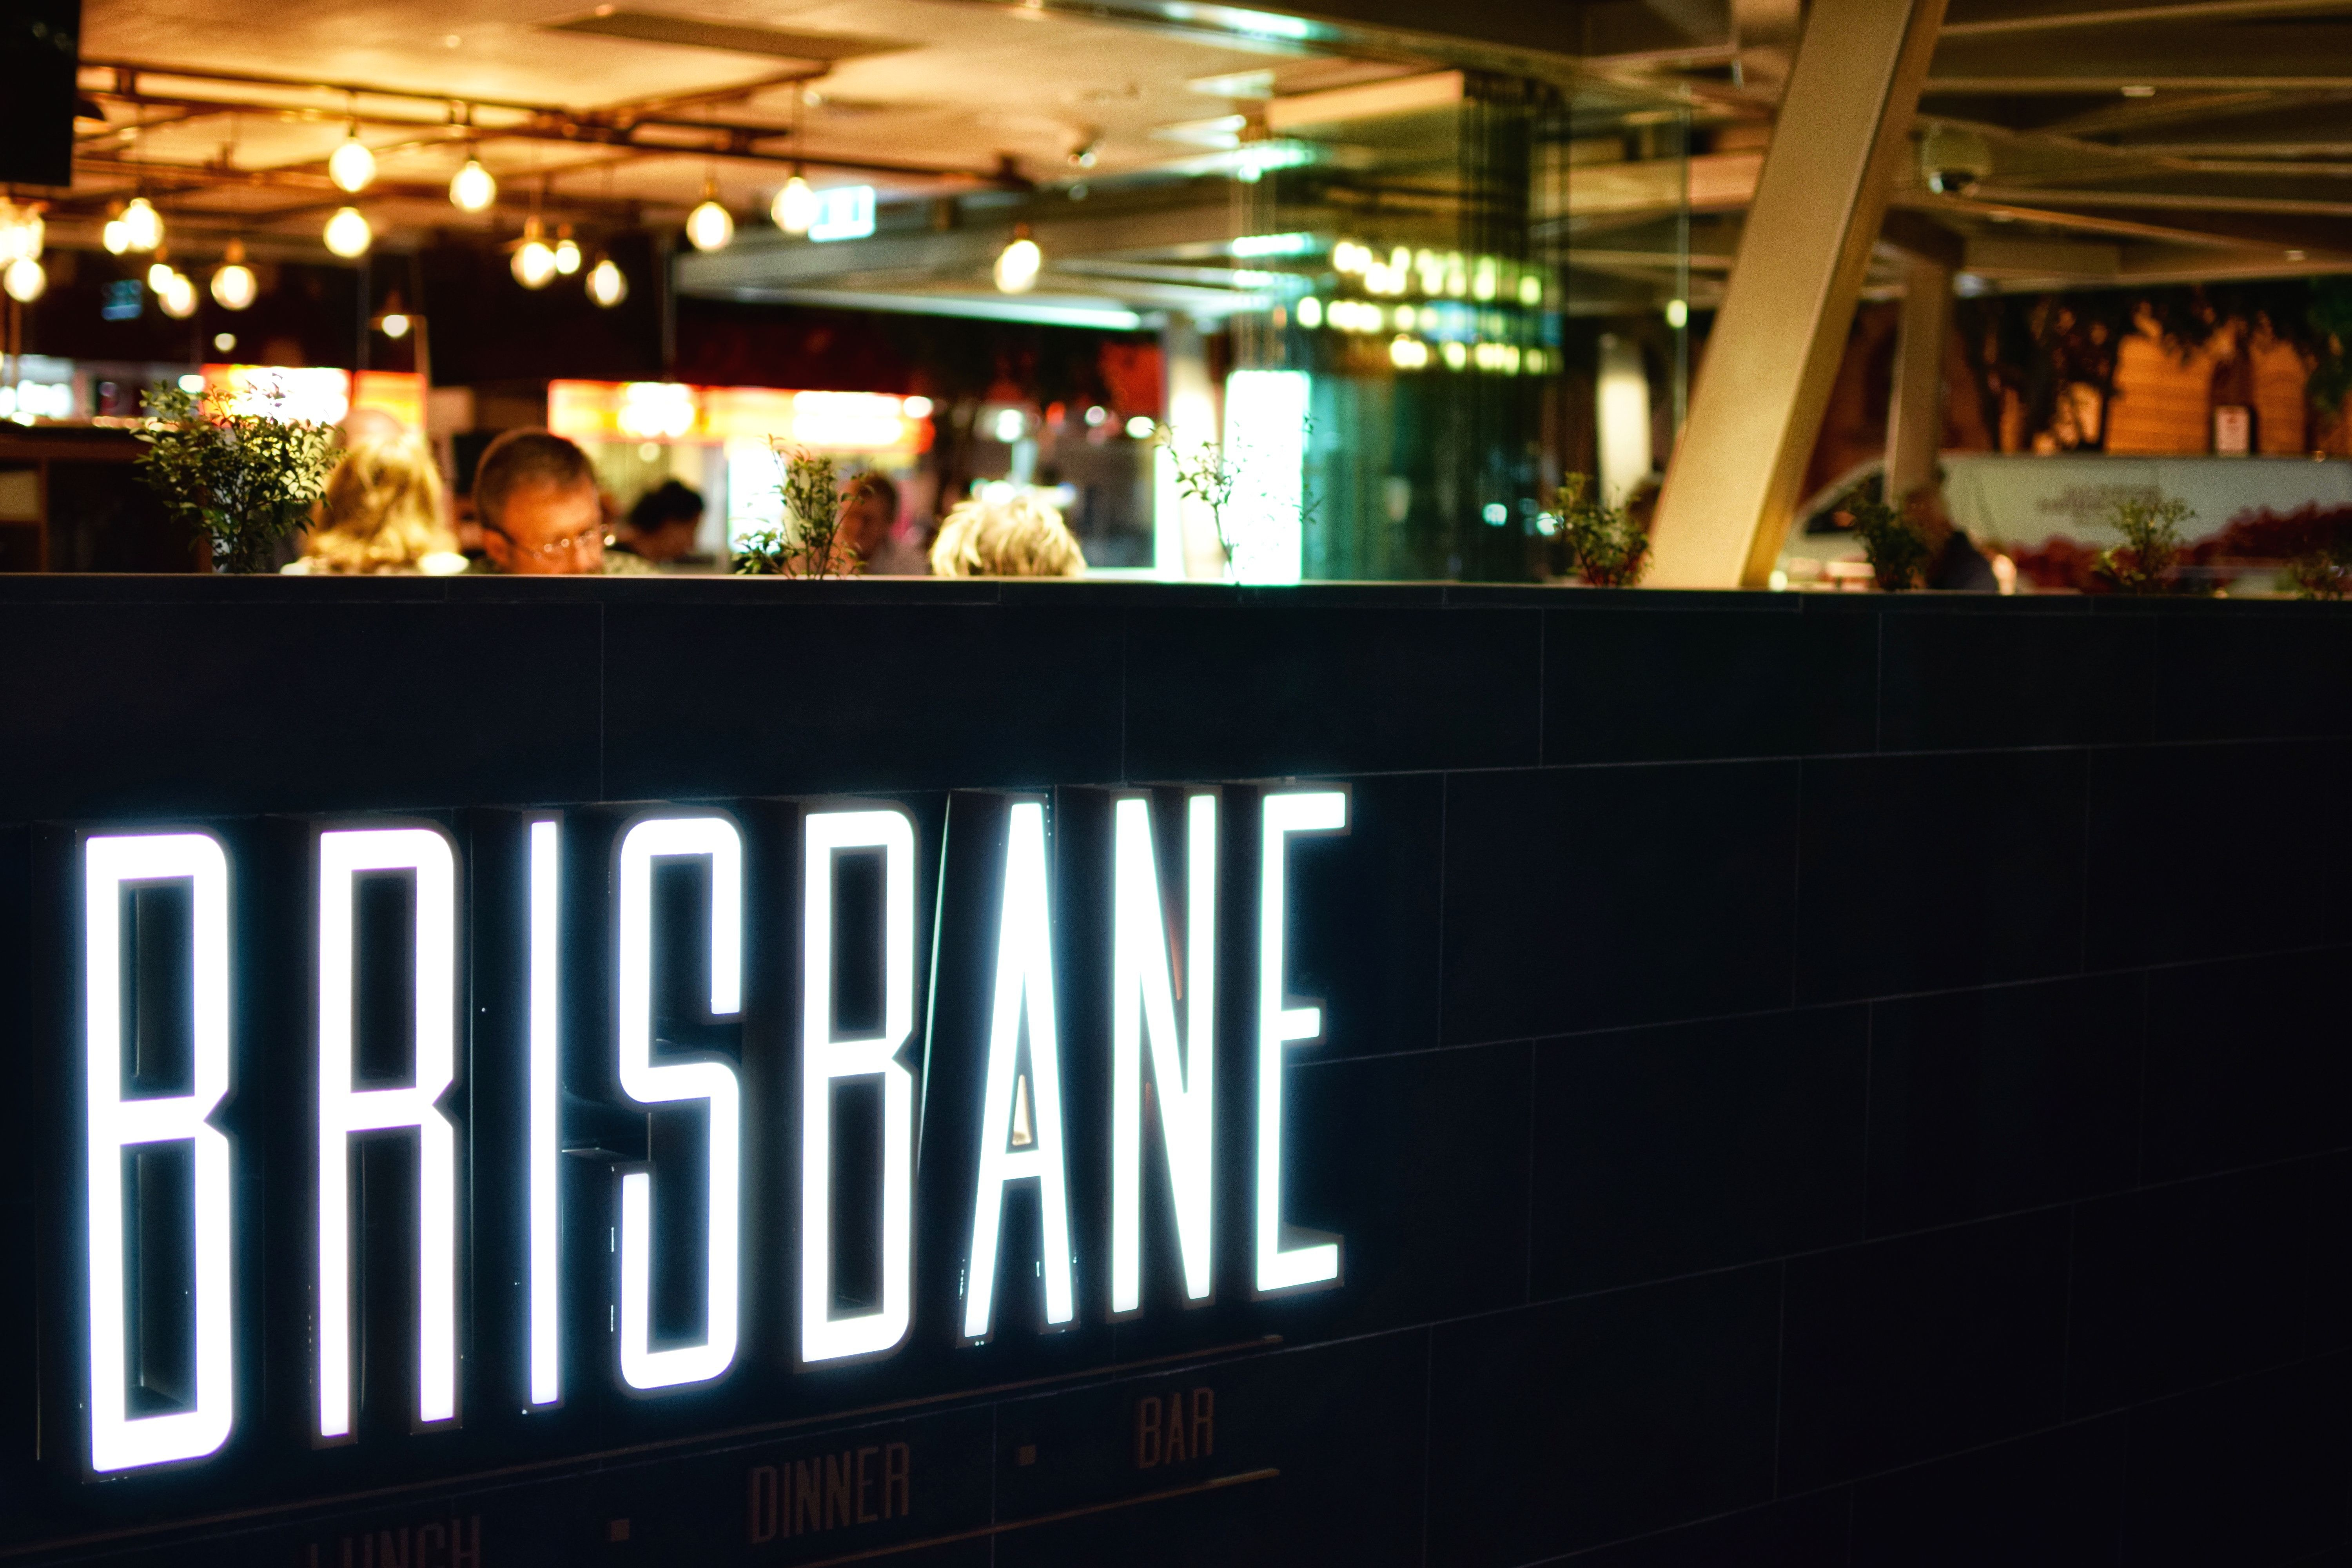 Diners sit inside a sports club with illuminated Brisbane sign oblivious to professional pest control services